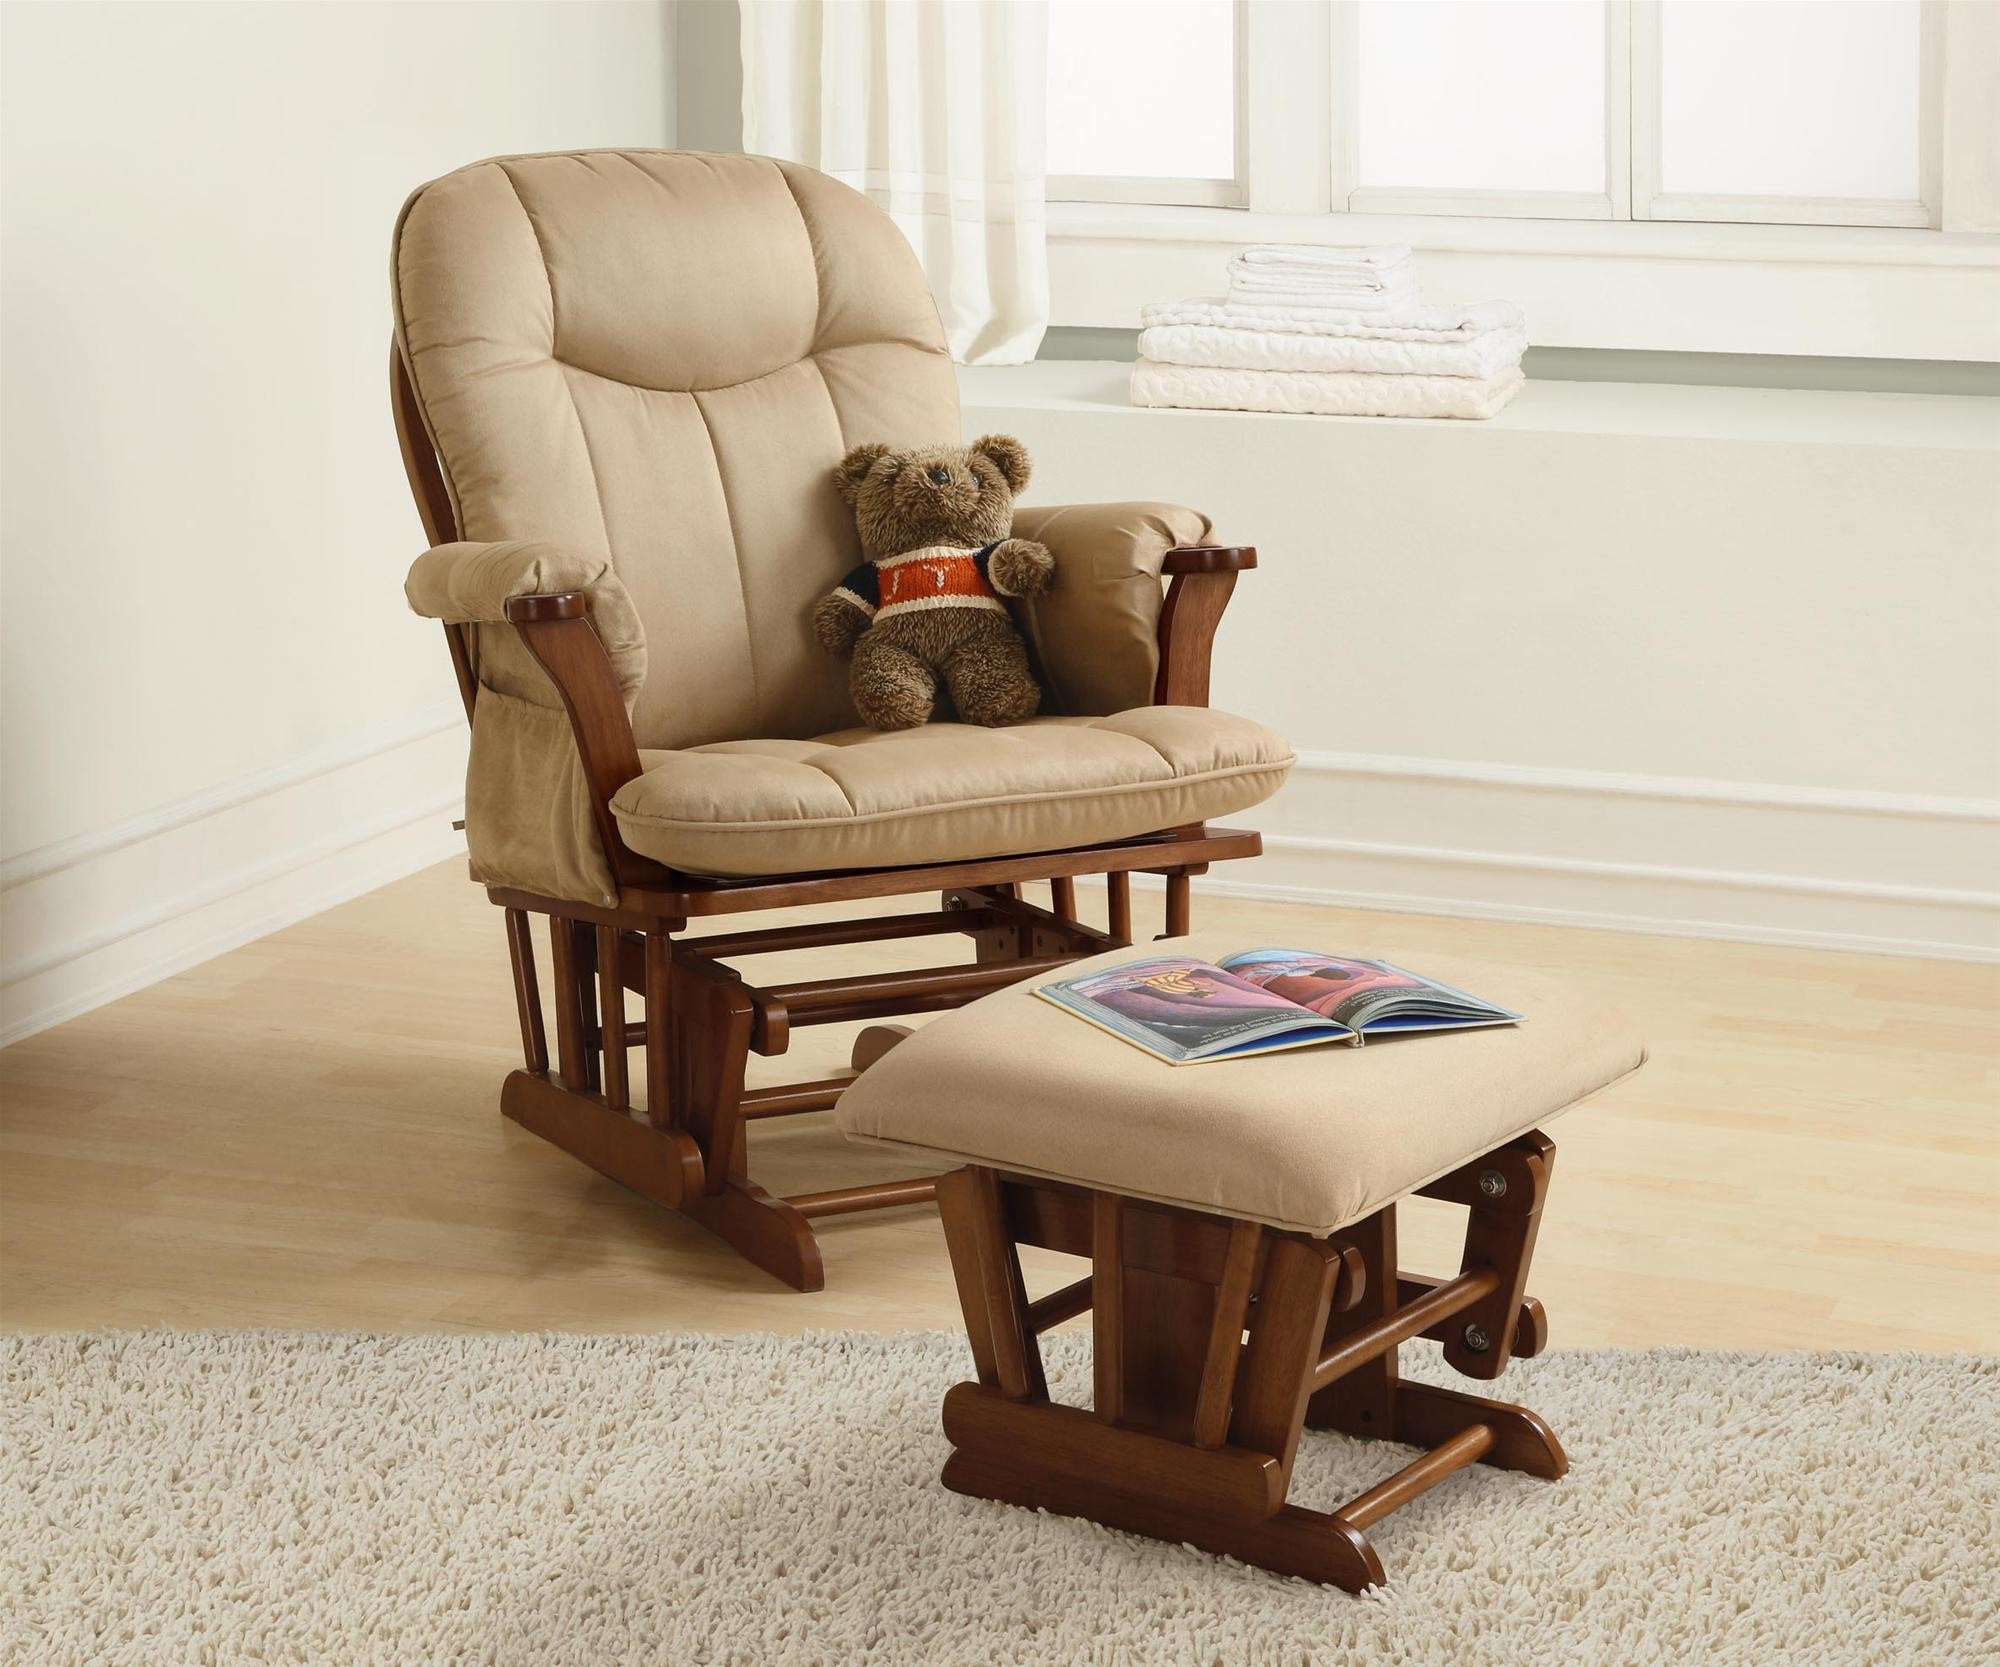 Image of: awesome glider rocking chair